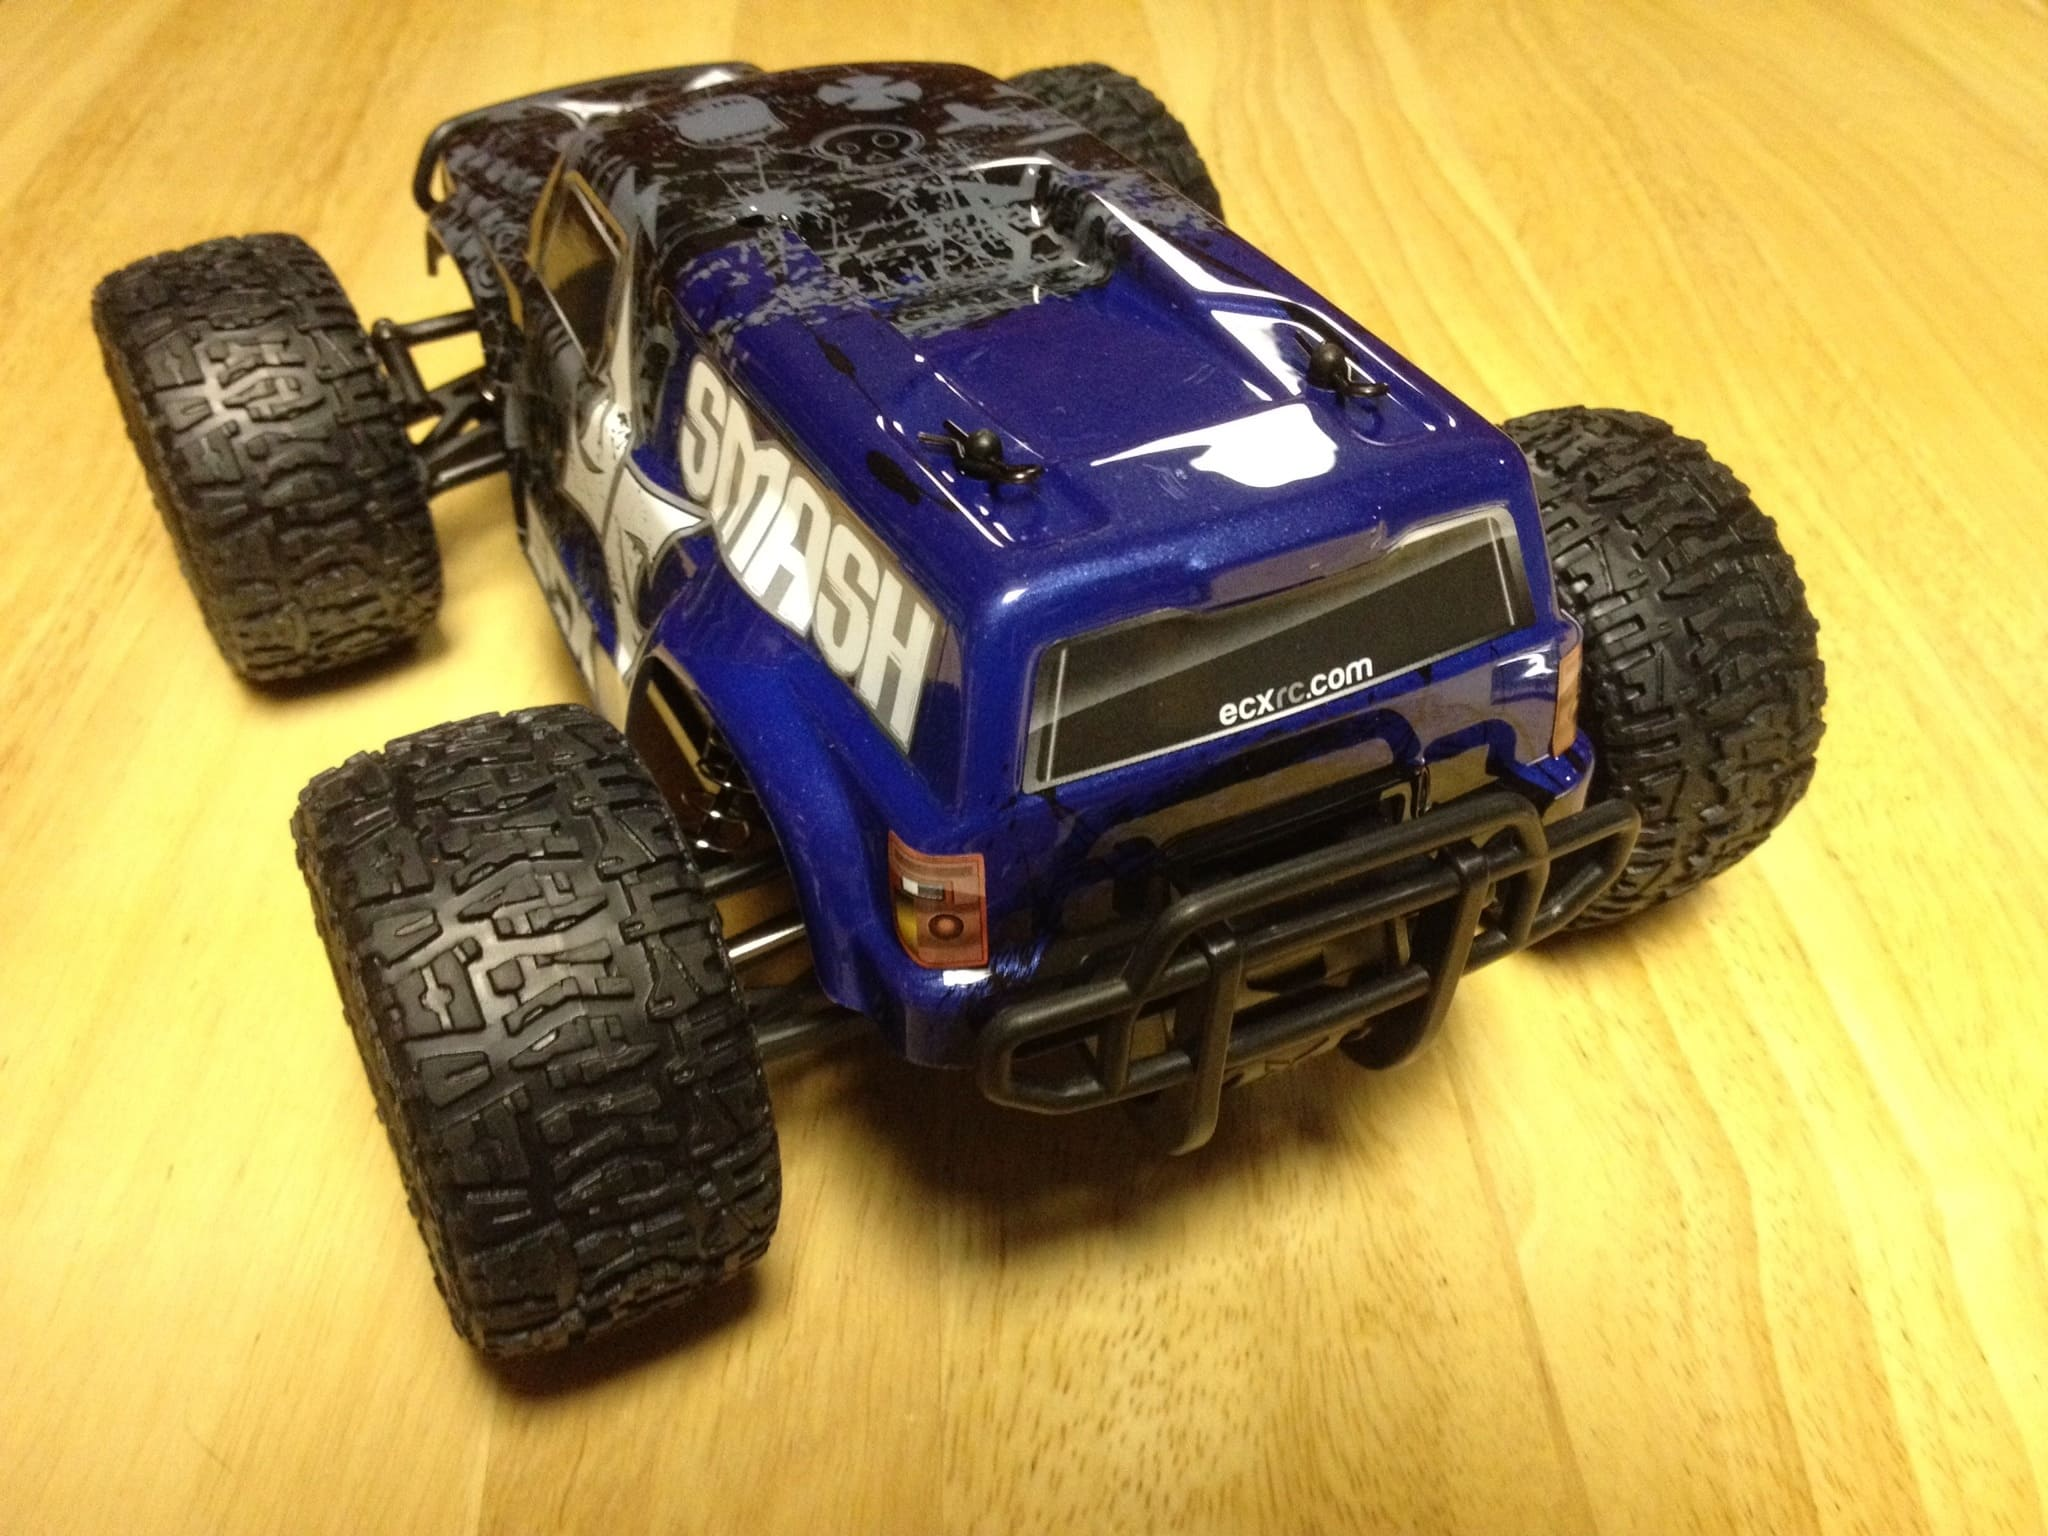 What's the next vehicle you'll be parking in your R/C garage?